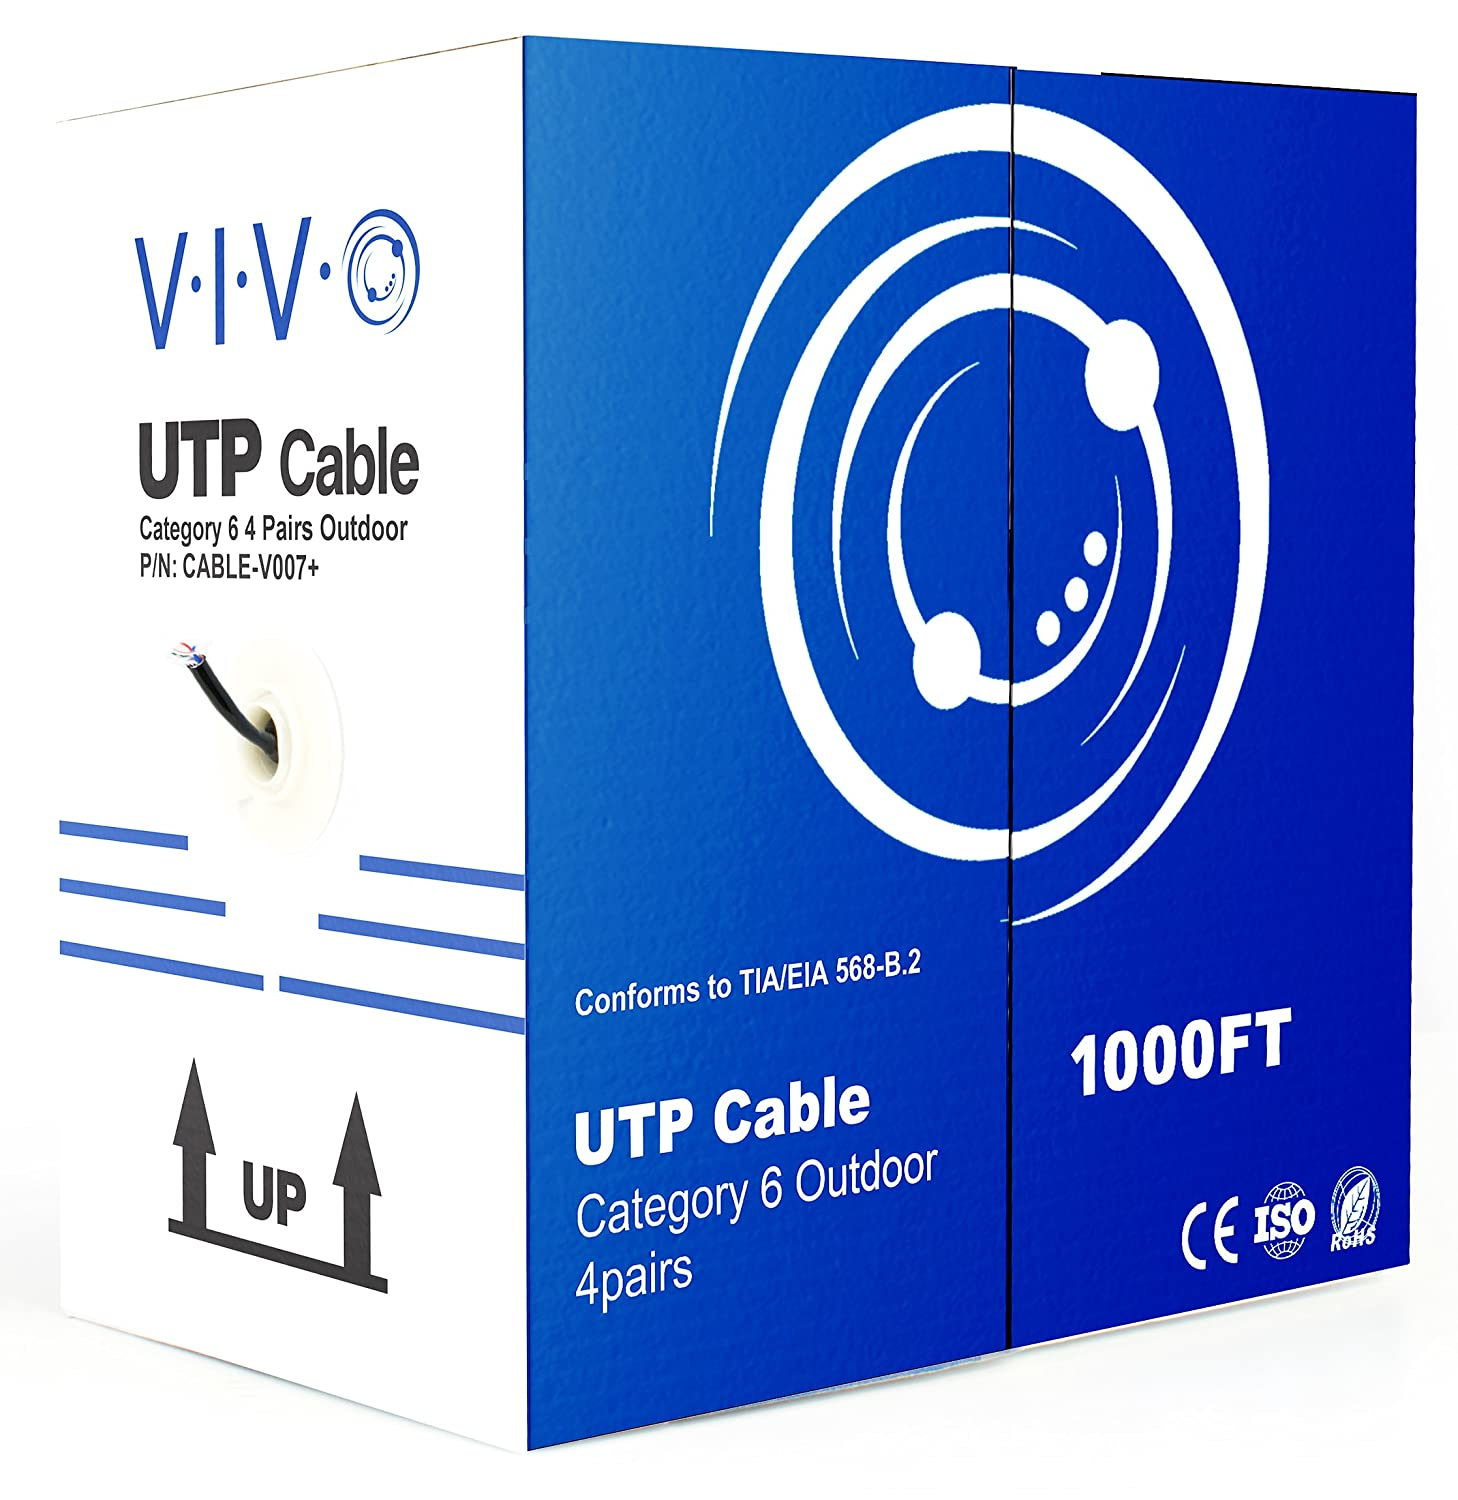 New 1000 Ft Cat6 Ethernet Cable Wire 1000ft Cat 6 Waterproof Also Wiring Diagram Further Rj45 Connector Outdoor Direct Burial Underground Vivo V007 Electronics